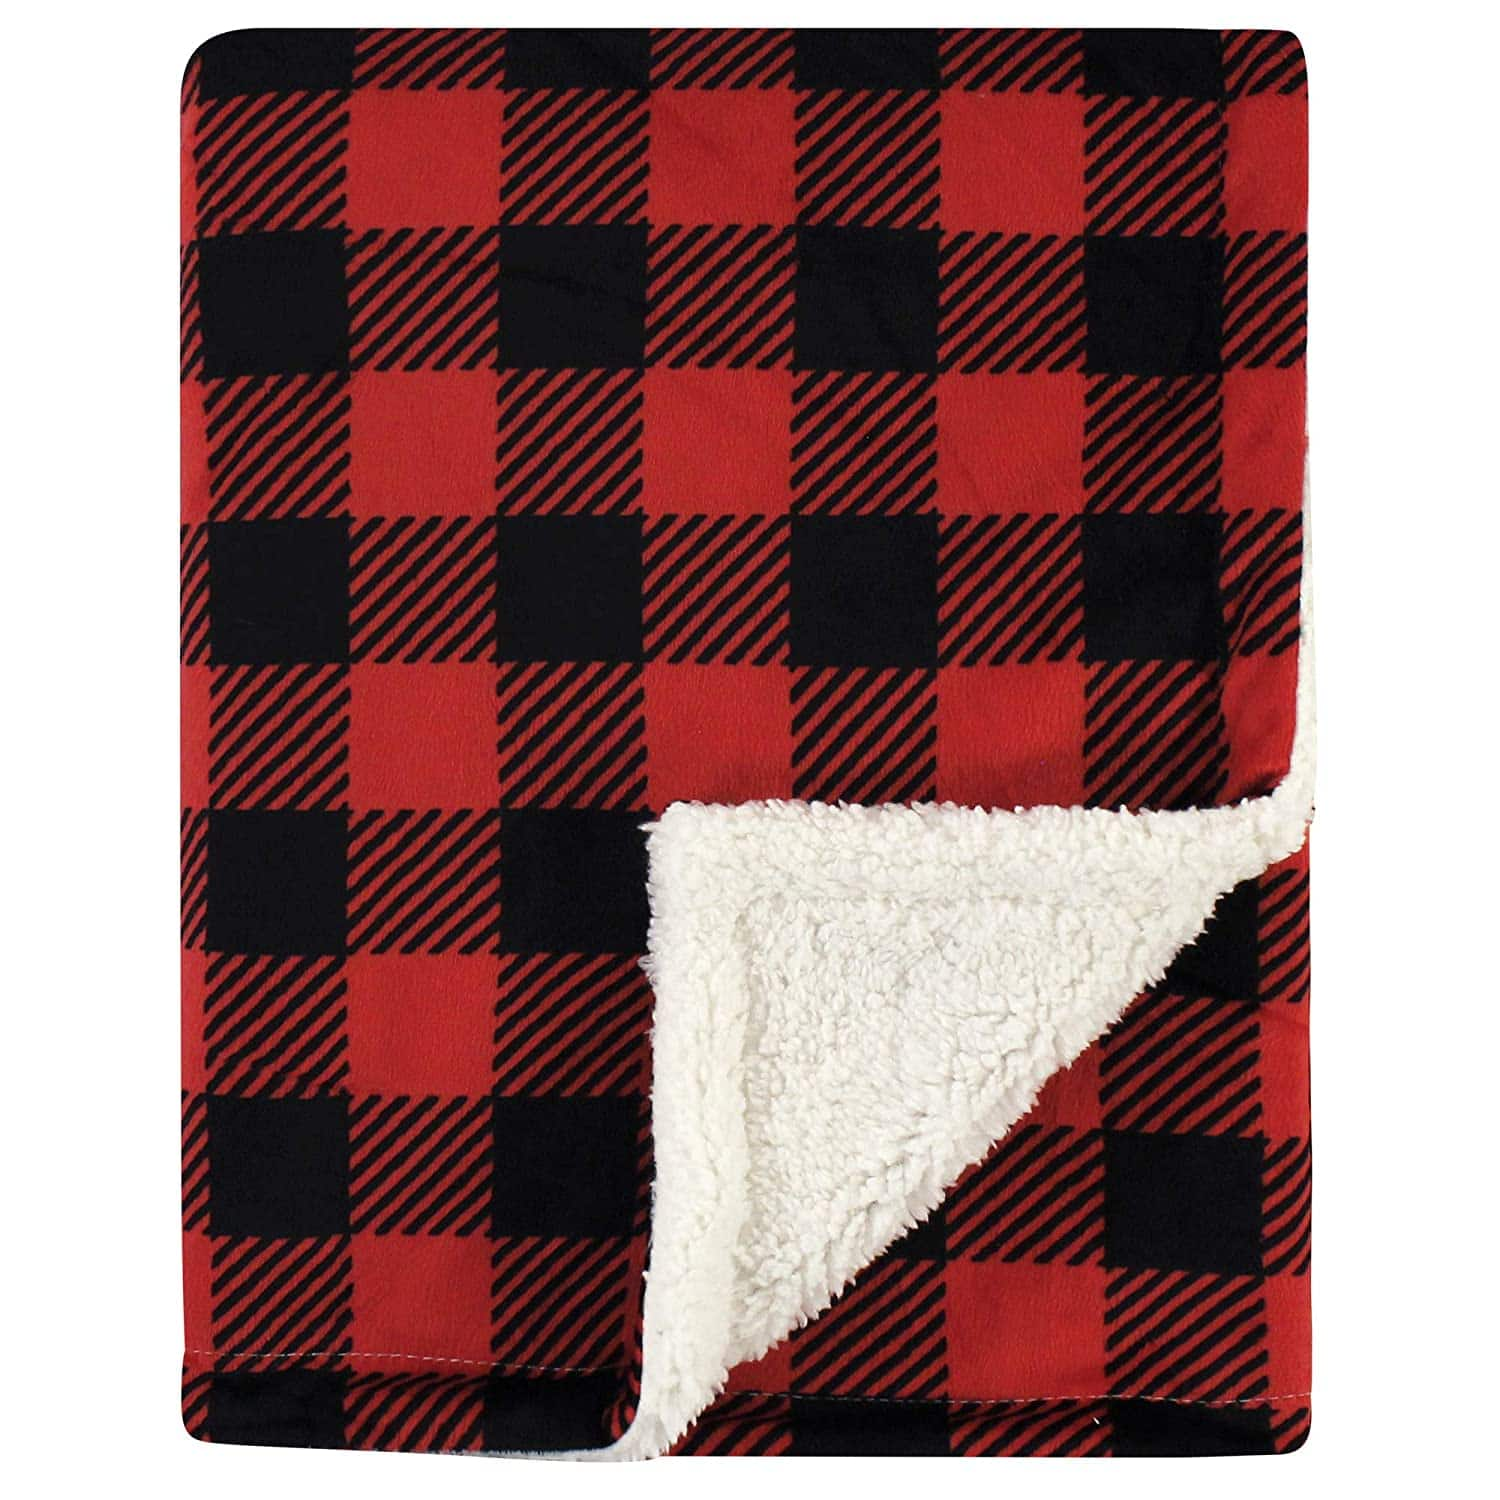 Hudson Baby Unisex Baby Plush Blanket with Sherpa Back (Buffalo Plaid) $7.50 & More + Free Shipping w/ Prime or $25+